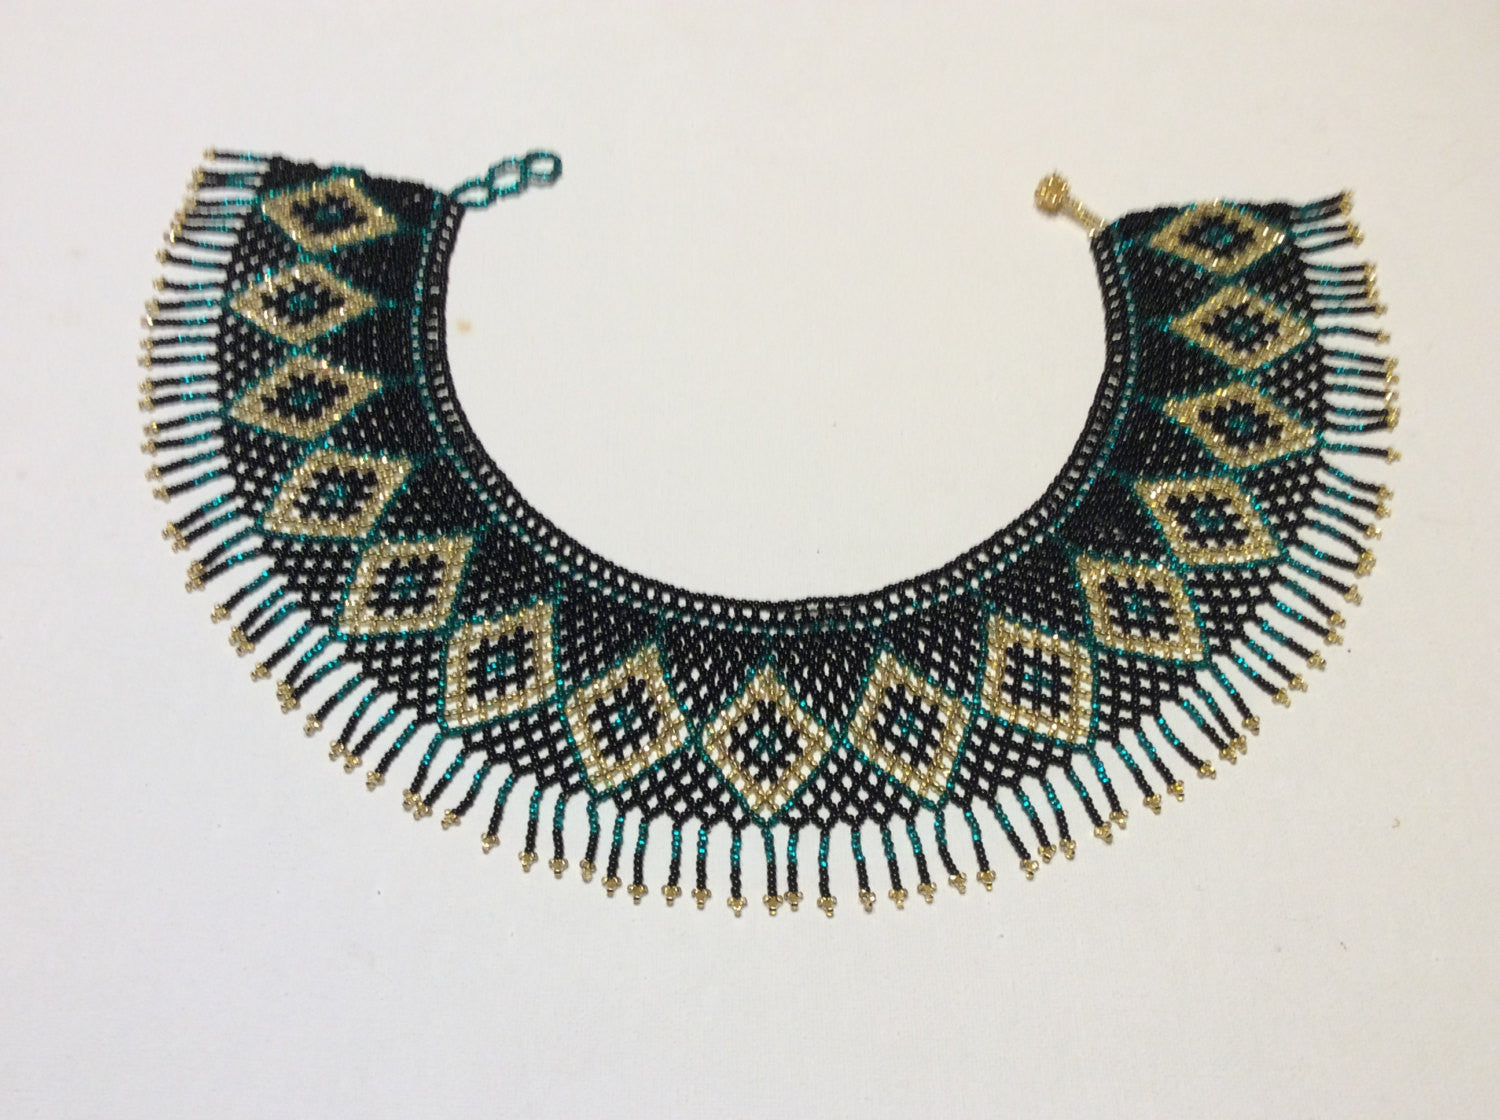 7d695cd6443eac Fringed , seed bead collar necklace. Huichol necklace. | Beads,Bags &  Baubles